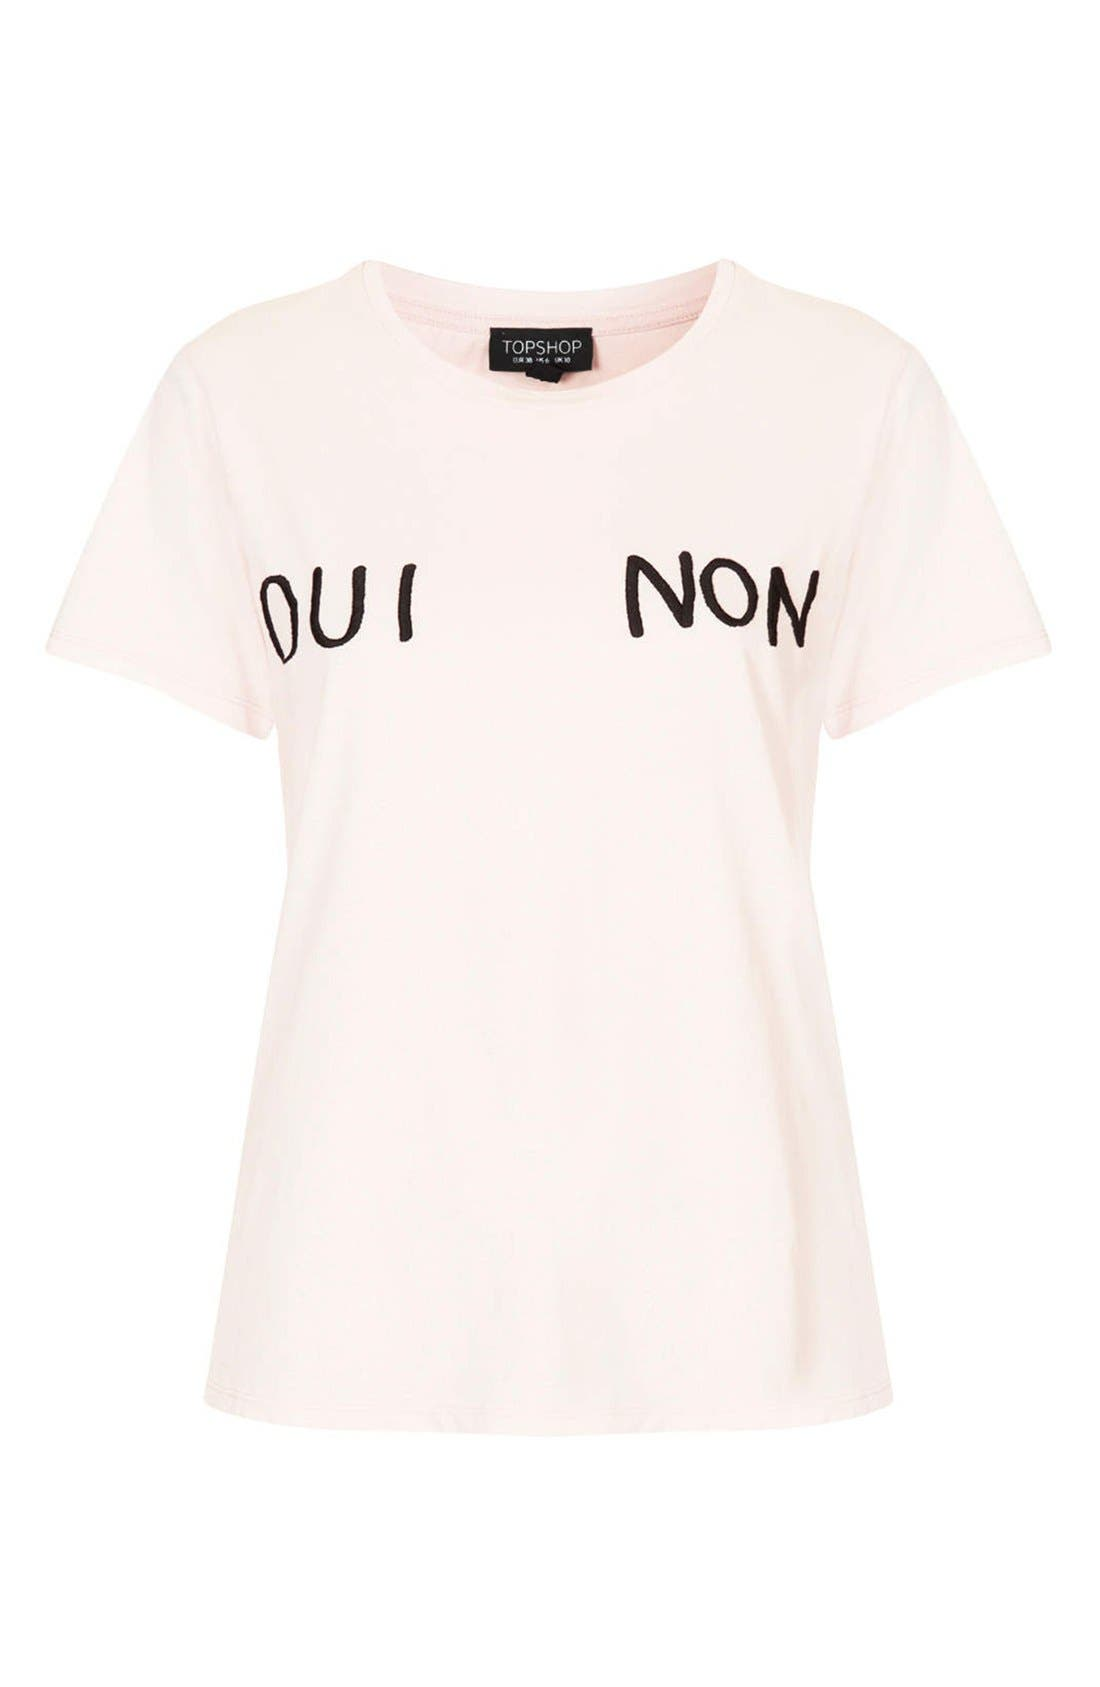 Alternate Image 3  - Topshop 'Oui Non' Embroidered Cotton Tee